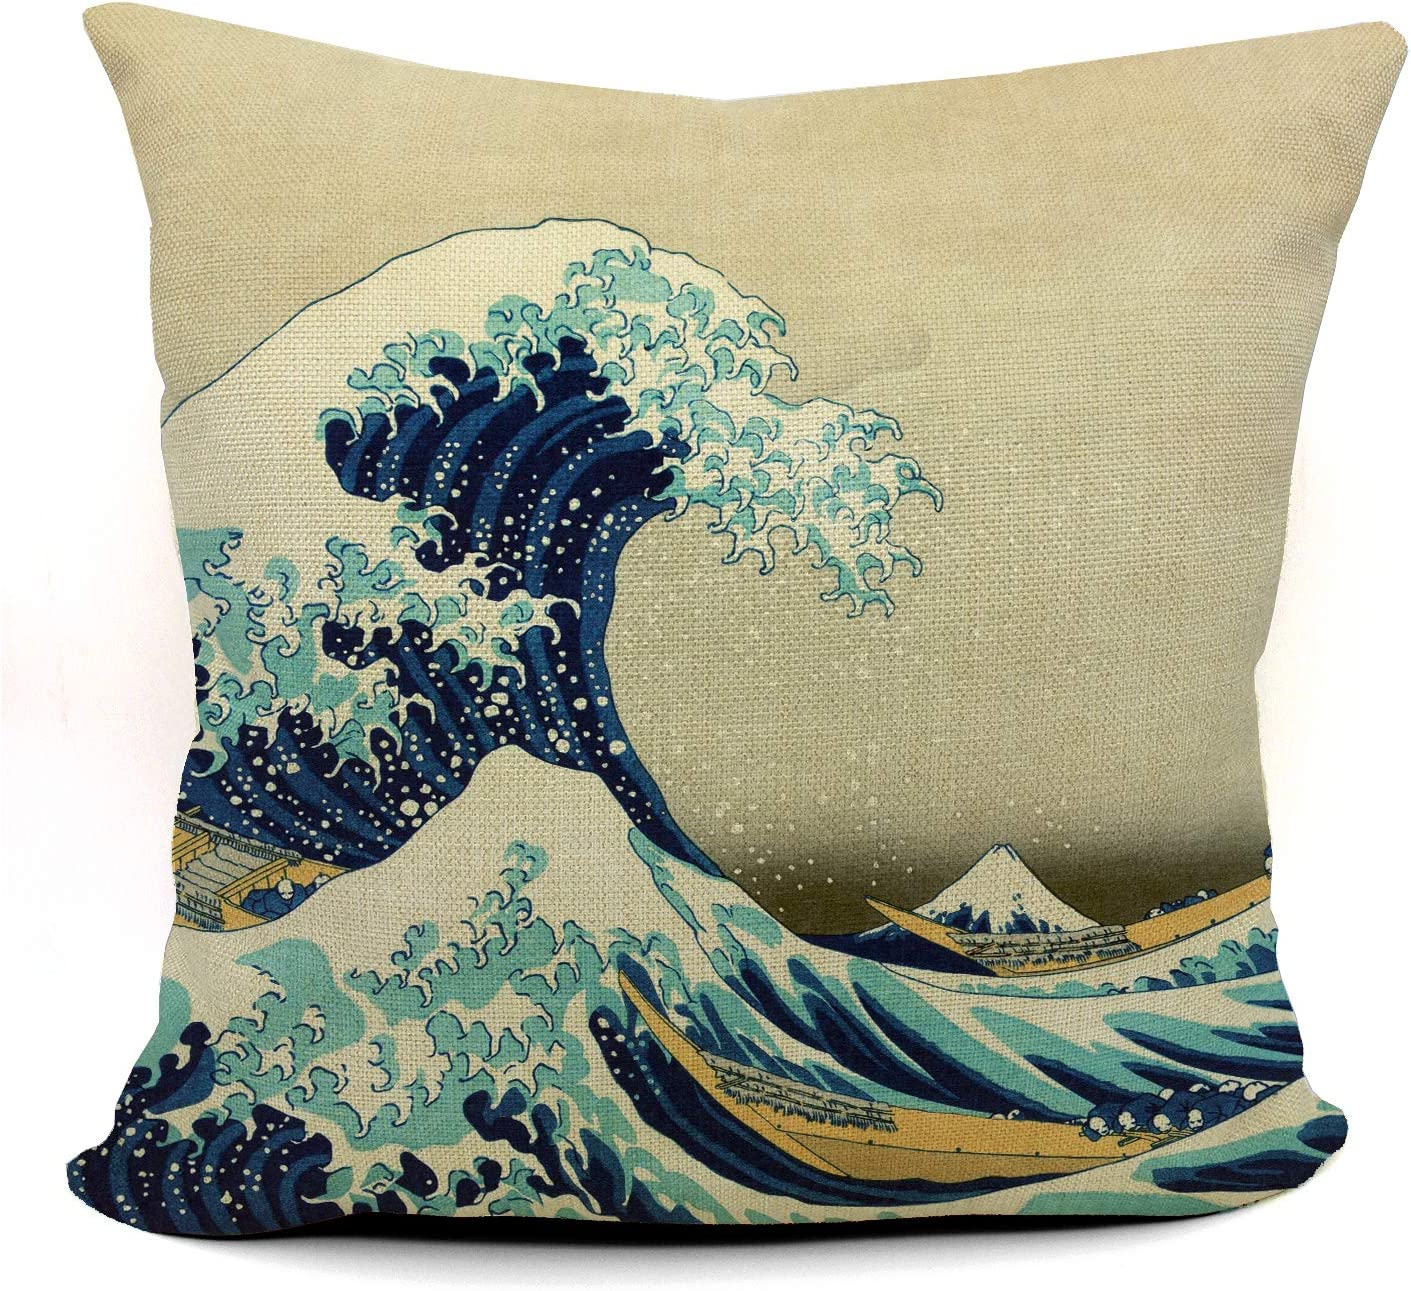 Mancheng-zi Great Wave of Kanagawa Katsushika Throw Pillow Case, Gift for Daughter, Sister, Wife, Girl's Room Decoration, Girl College Dorm Decor, 18 x 18 Inch Linen Cushion Cover for Sofa Couch Bed